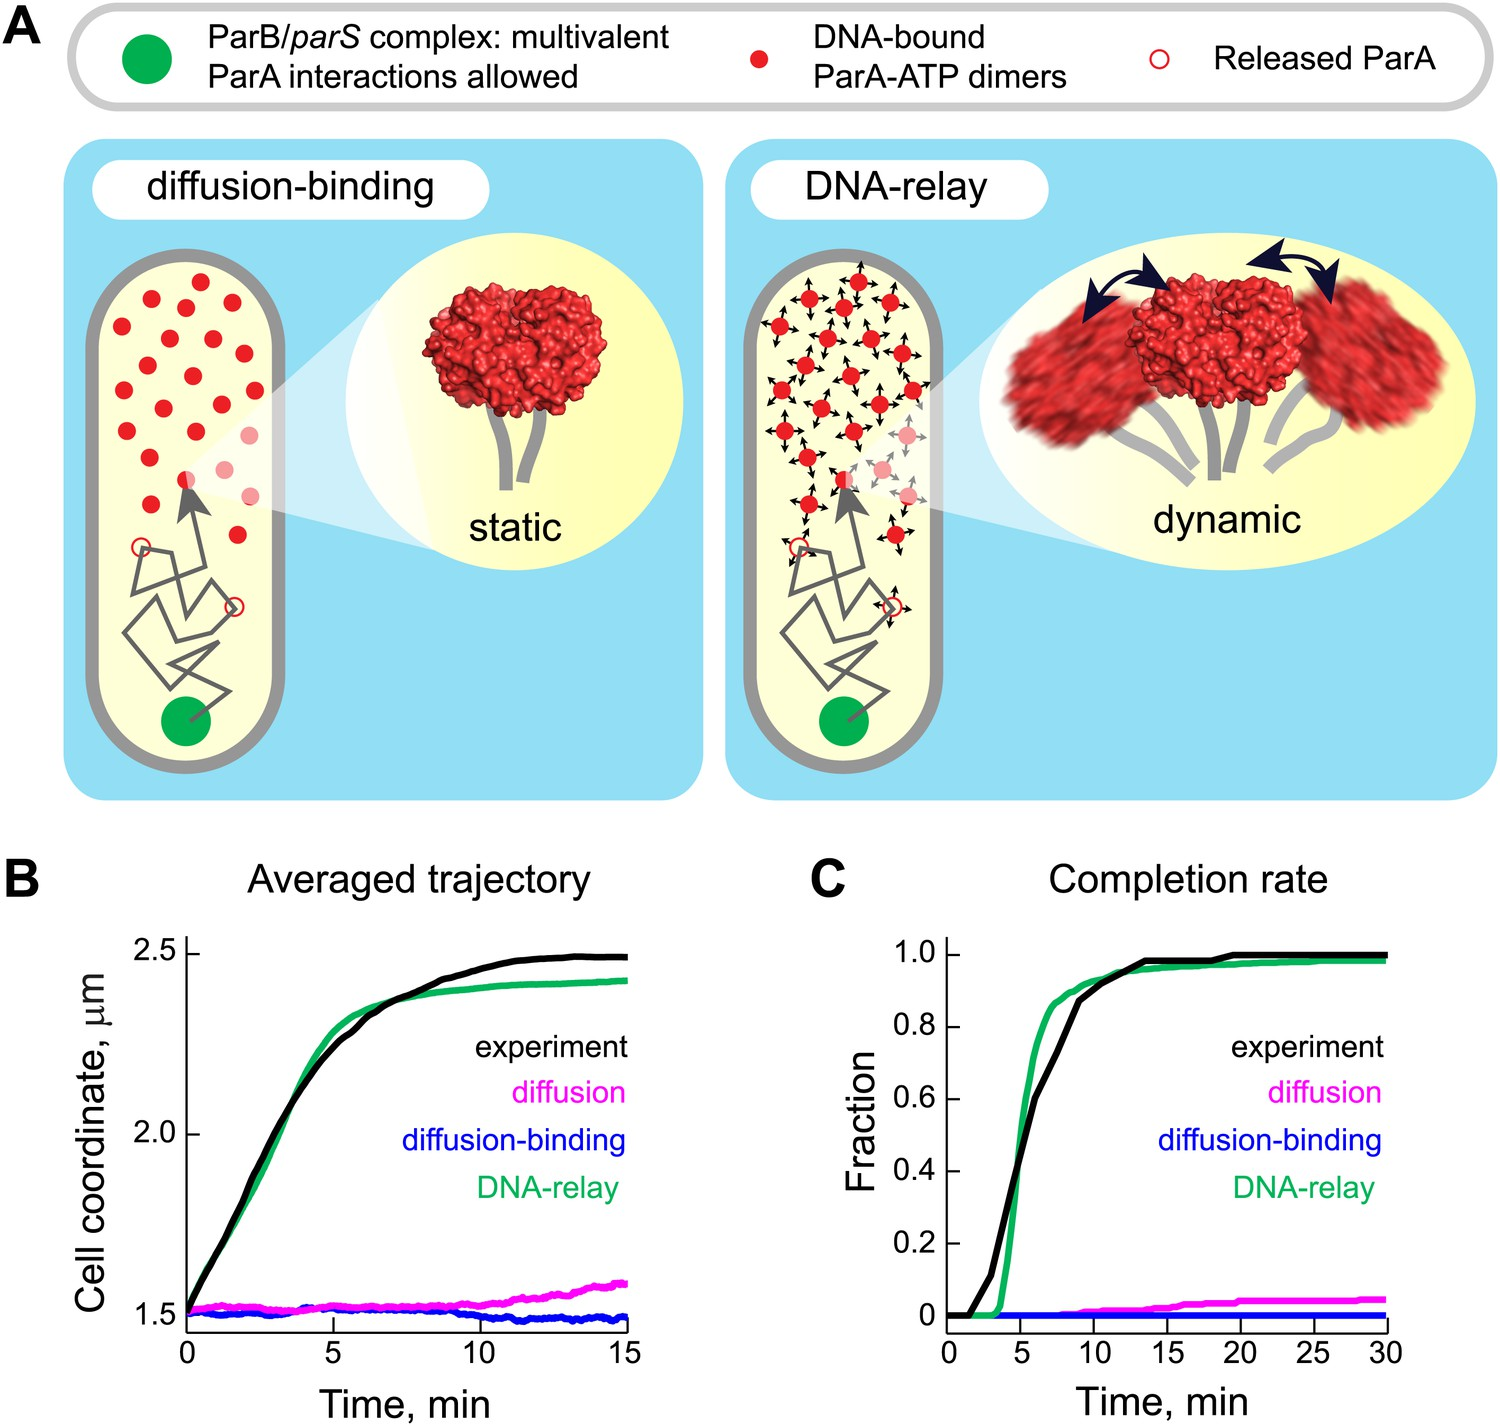 Evidence For A Dna Relay Mechanism In Parabs Mediated Chromosome Release Time Definition The Model Results Robust Translocation Of Parb Pars Complex